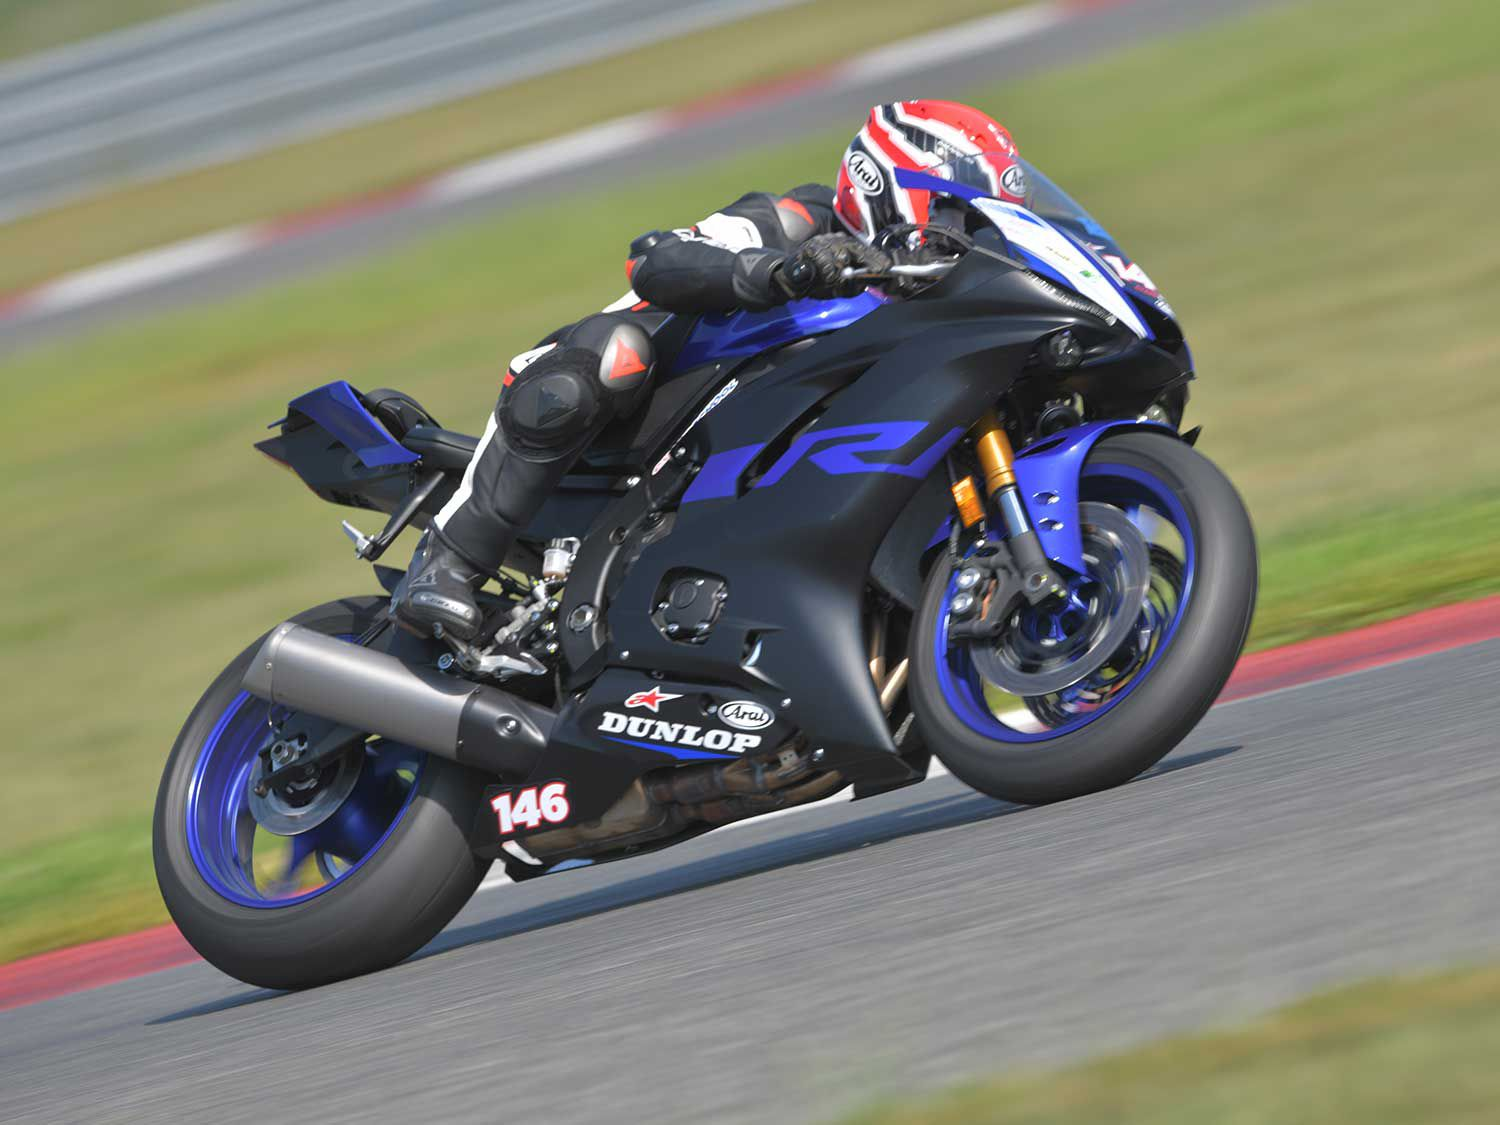 The Yamaha YZF-R6 is a great bike to learn on, though it's pretty cramped. Taller riders will likely struggle to move around on it.